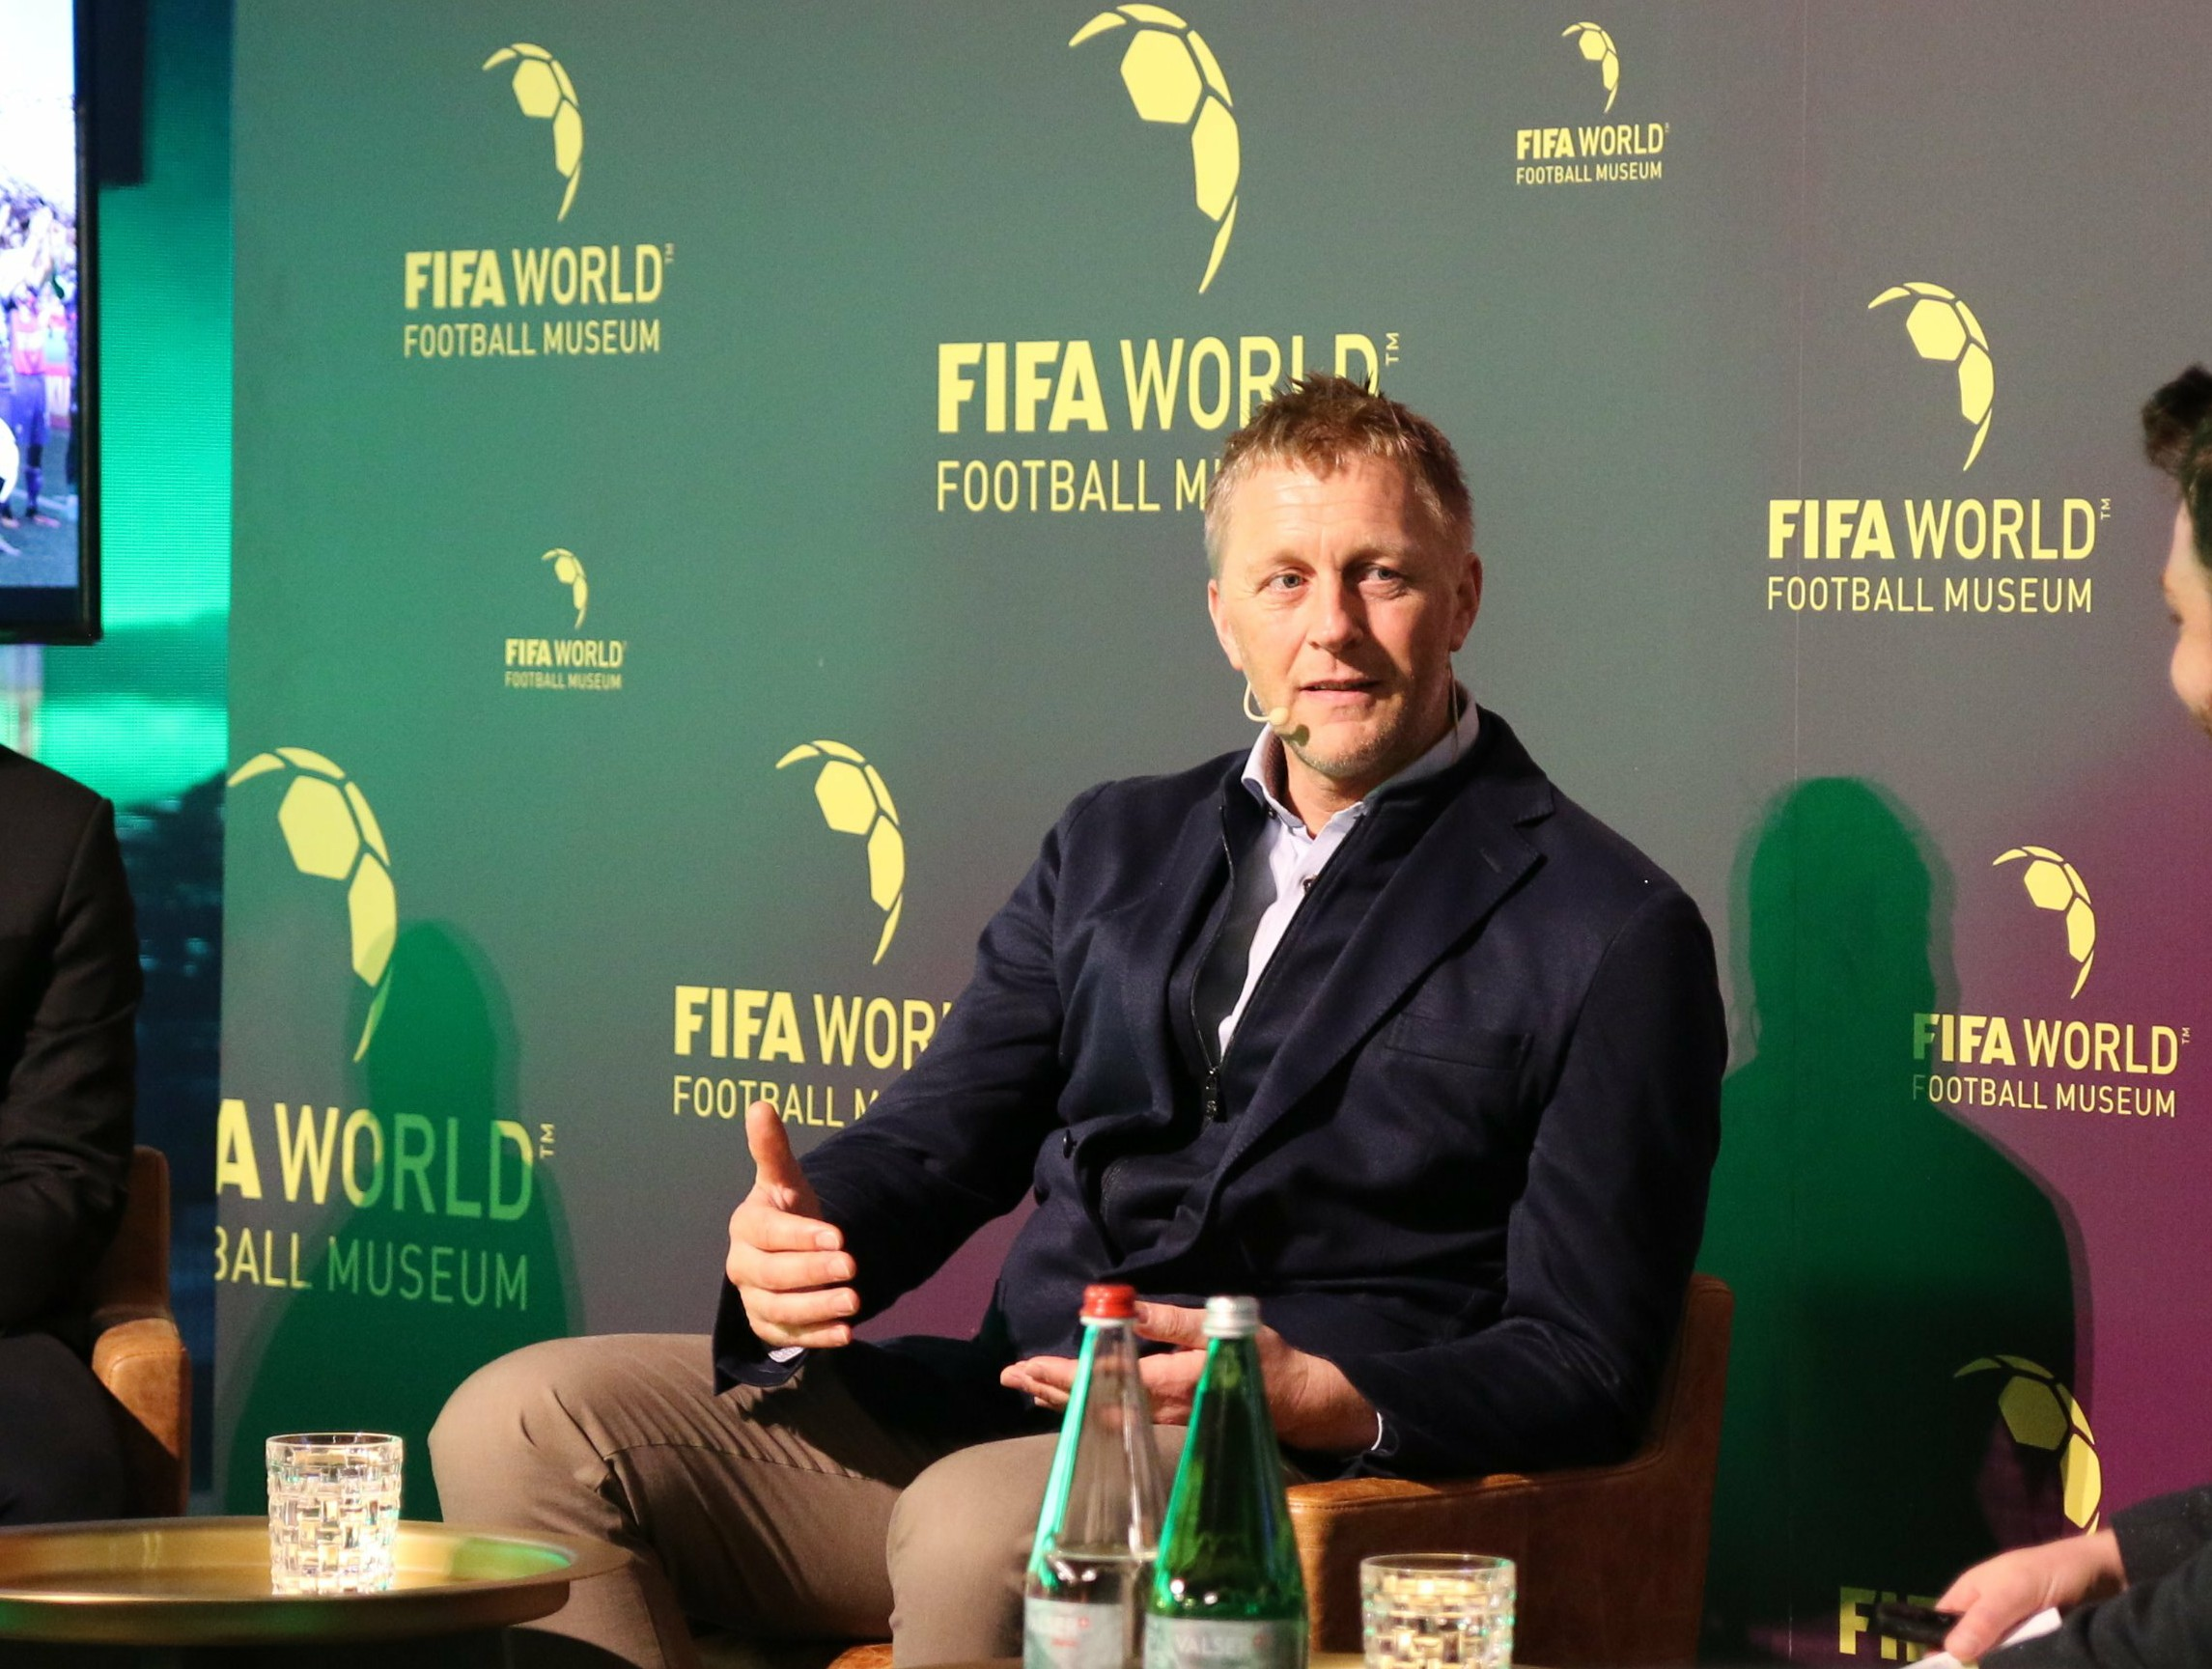 Iceland Coach Sends Provisional World Cup Squad To FIFA, Names Possible Final 23